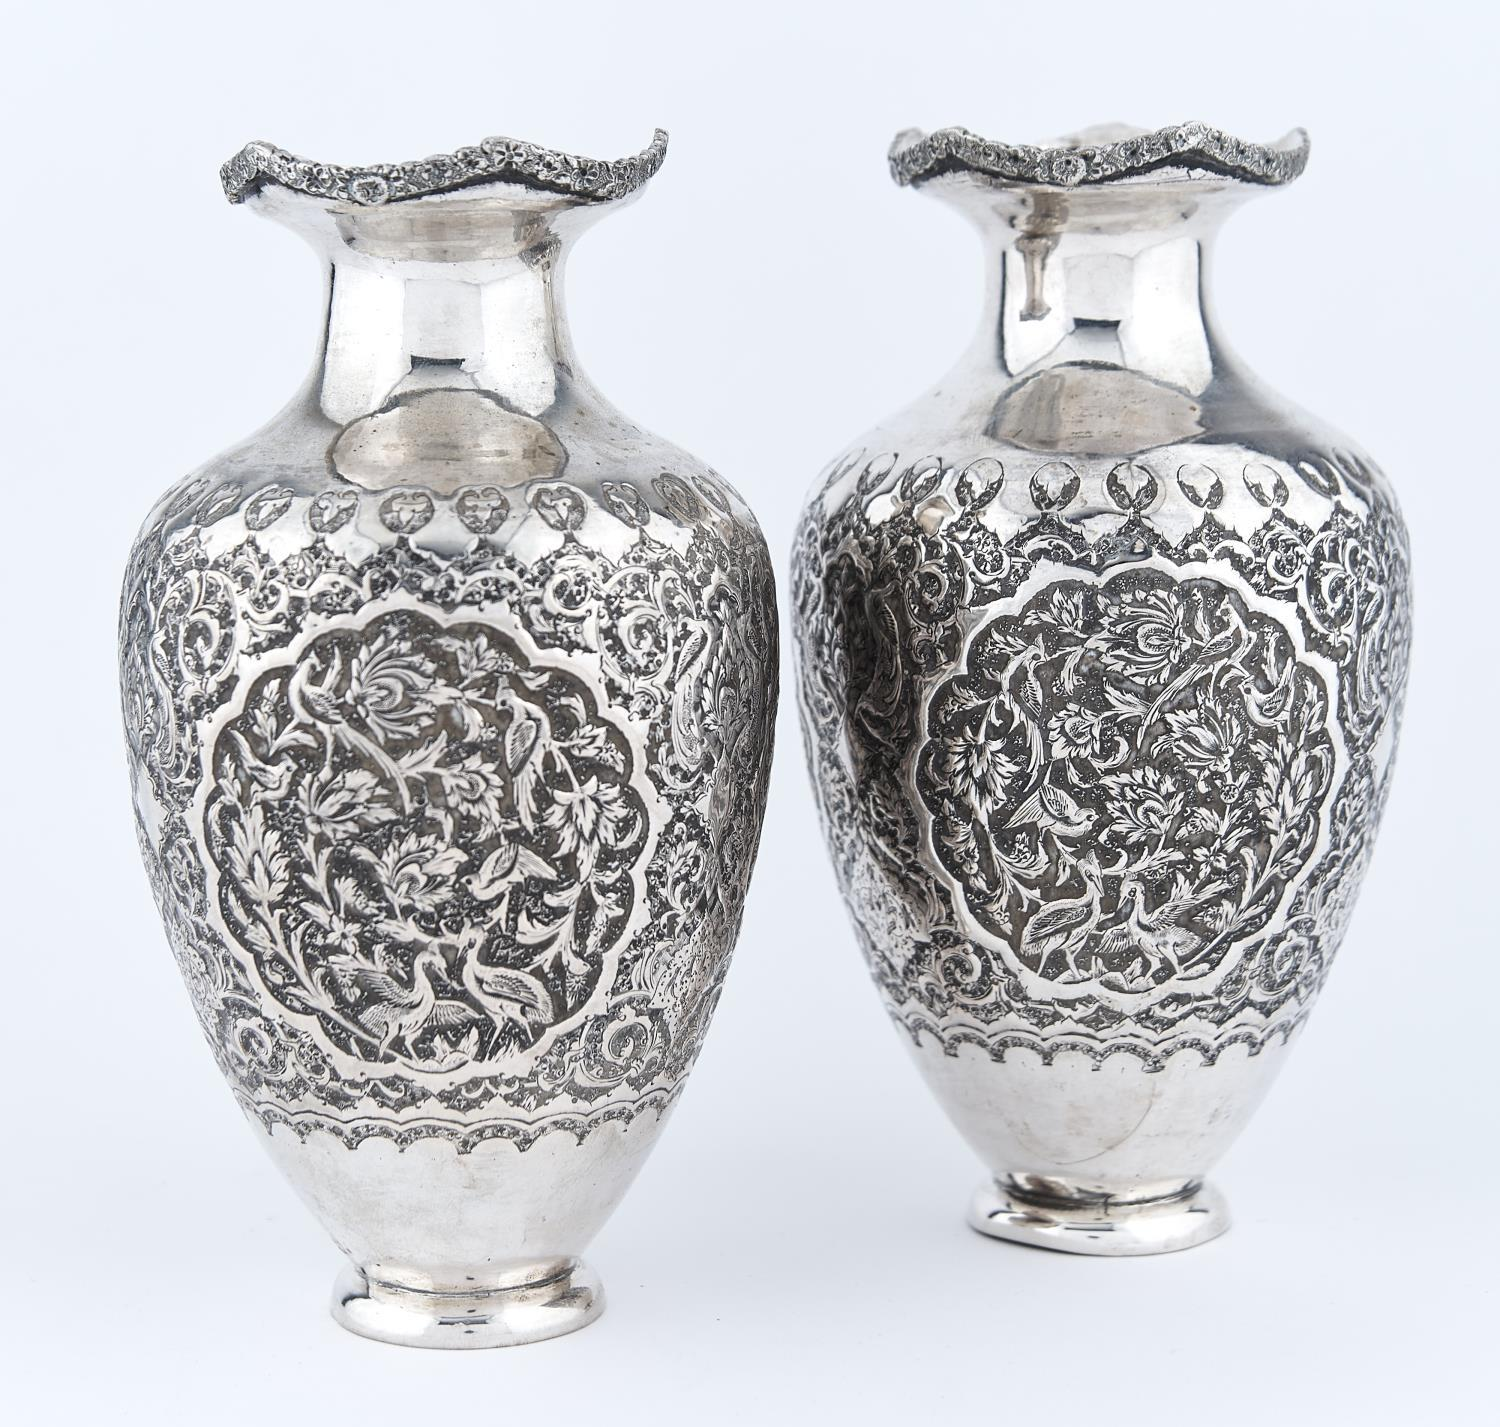 A PAIR OF OTTOMAN SILVER SHOULDERED OVIFORM REPOUSSE VASES, ARMENIA, LATE 19TH C, THE SHAPED NECK